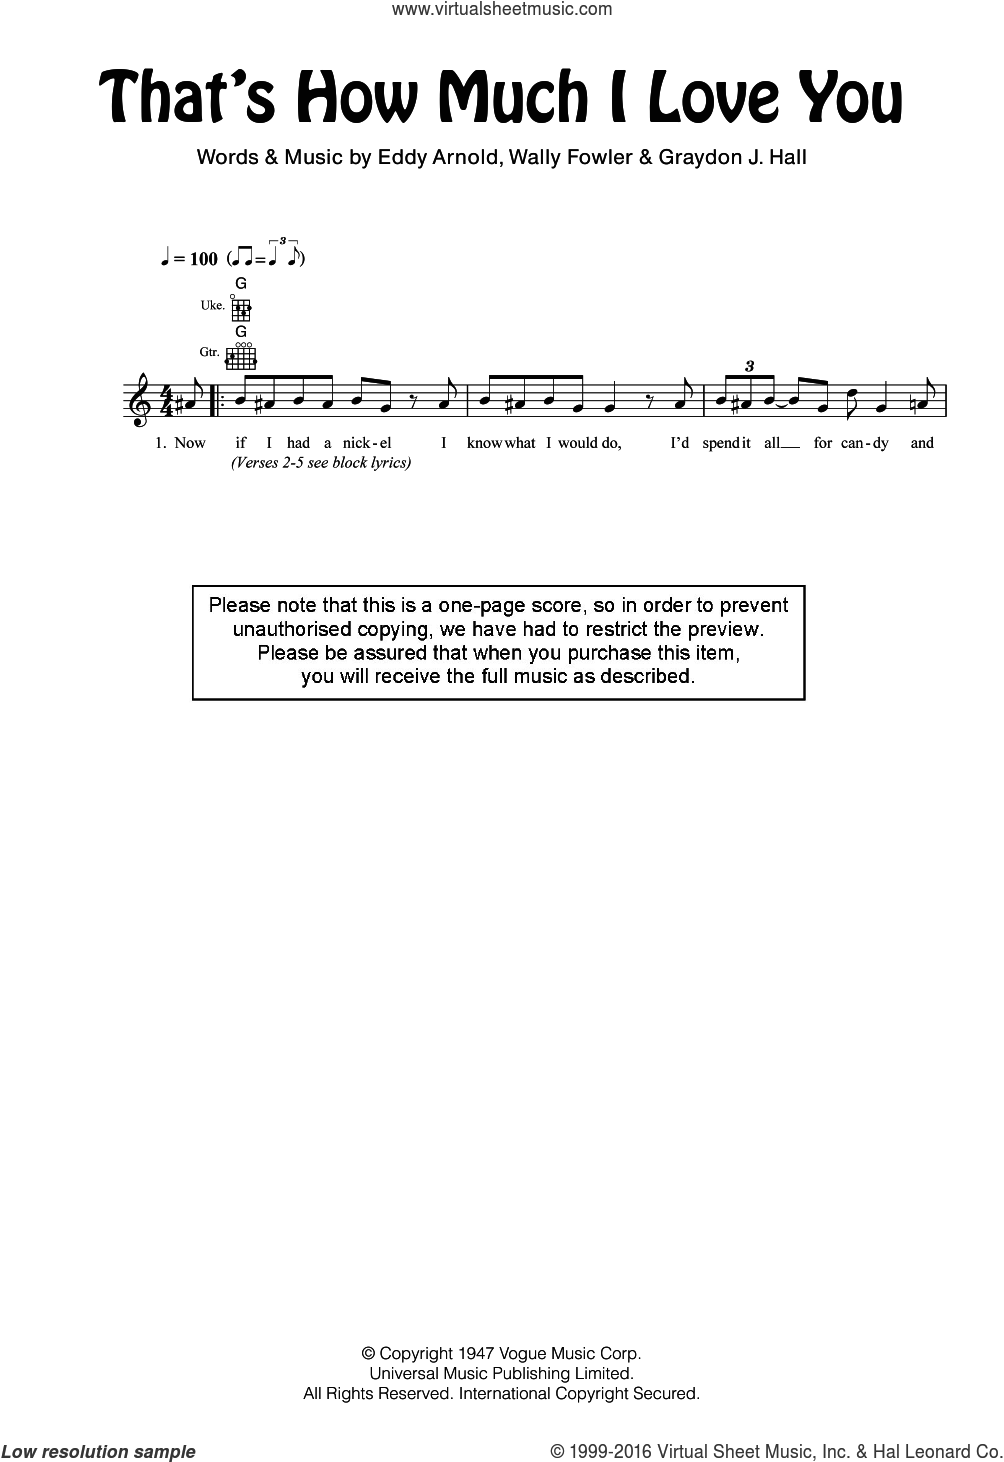 That's How Much I Love You sheet music for ukulele by Eddy Arnold, Graydon J. Hall and Wally Fowler, intermediate skill level